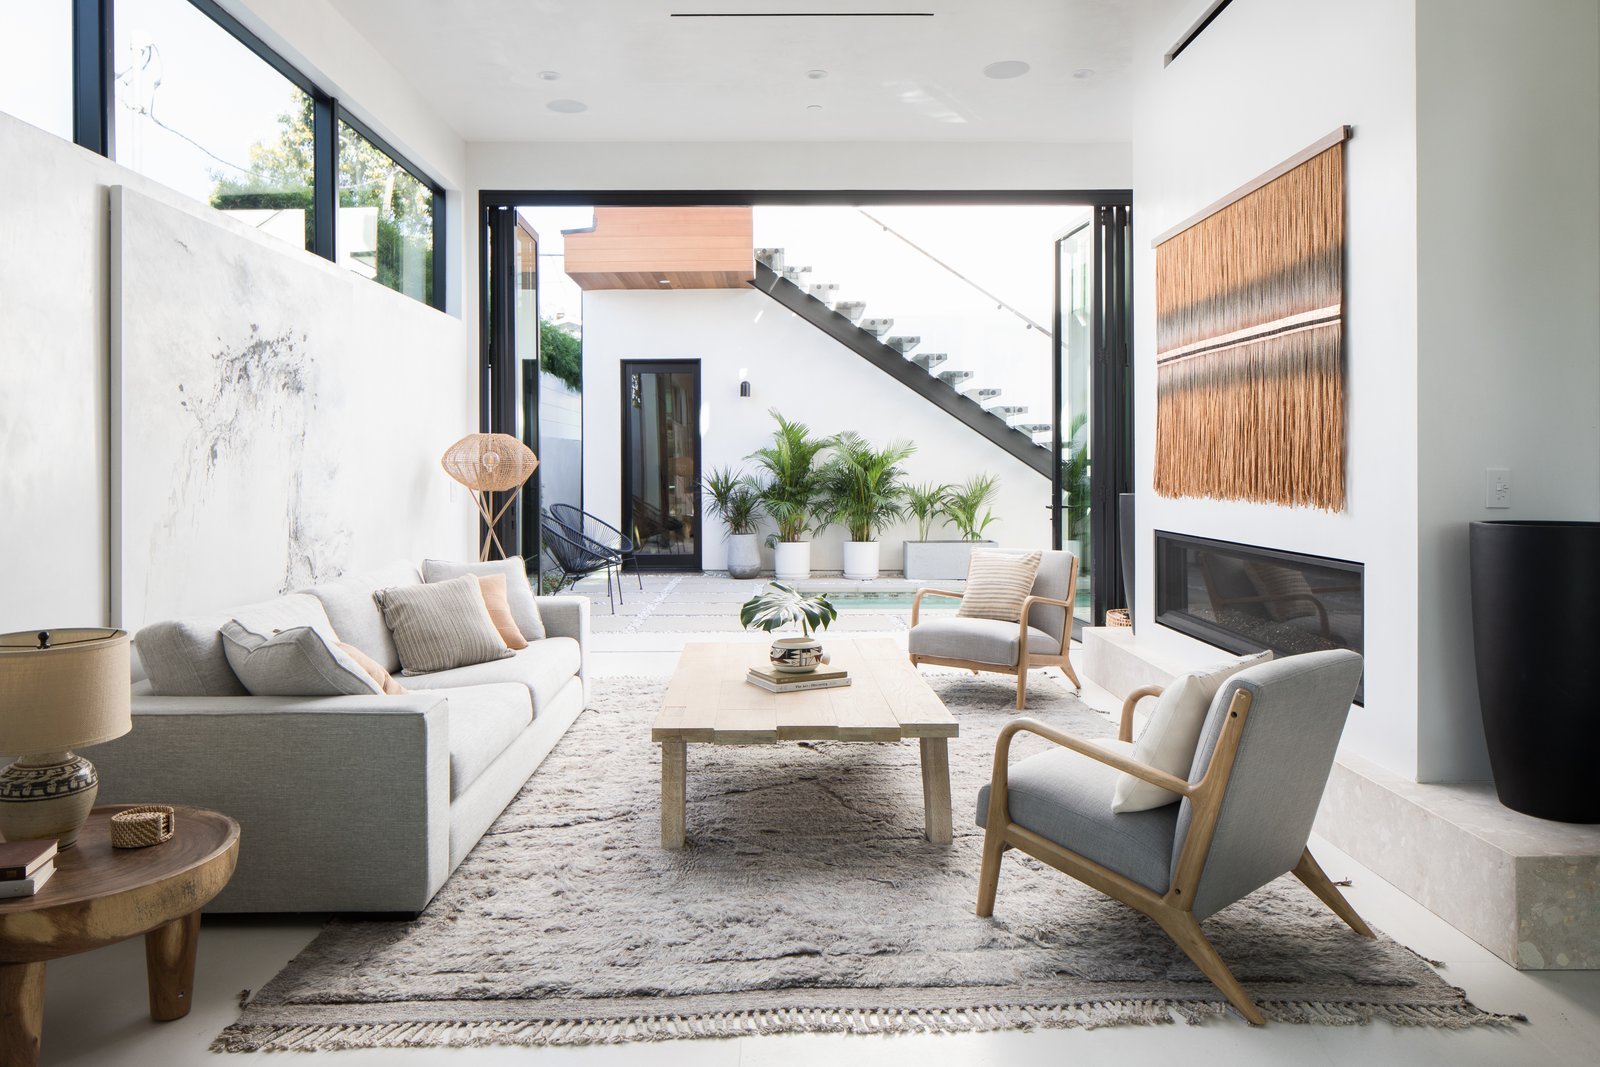 Living Room, Sofa, Recessed Lighting, Gas Burning Fireplace, Porcelain Tile Floor, Coffee Tables, Lamps, End Tables, and Chair The home's open design is perfect for indoor/outdoor living.   Milwood Residence by Mayes Office